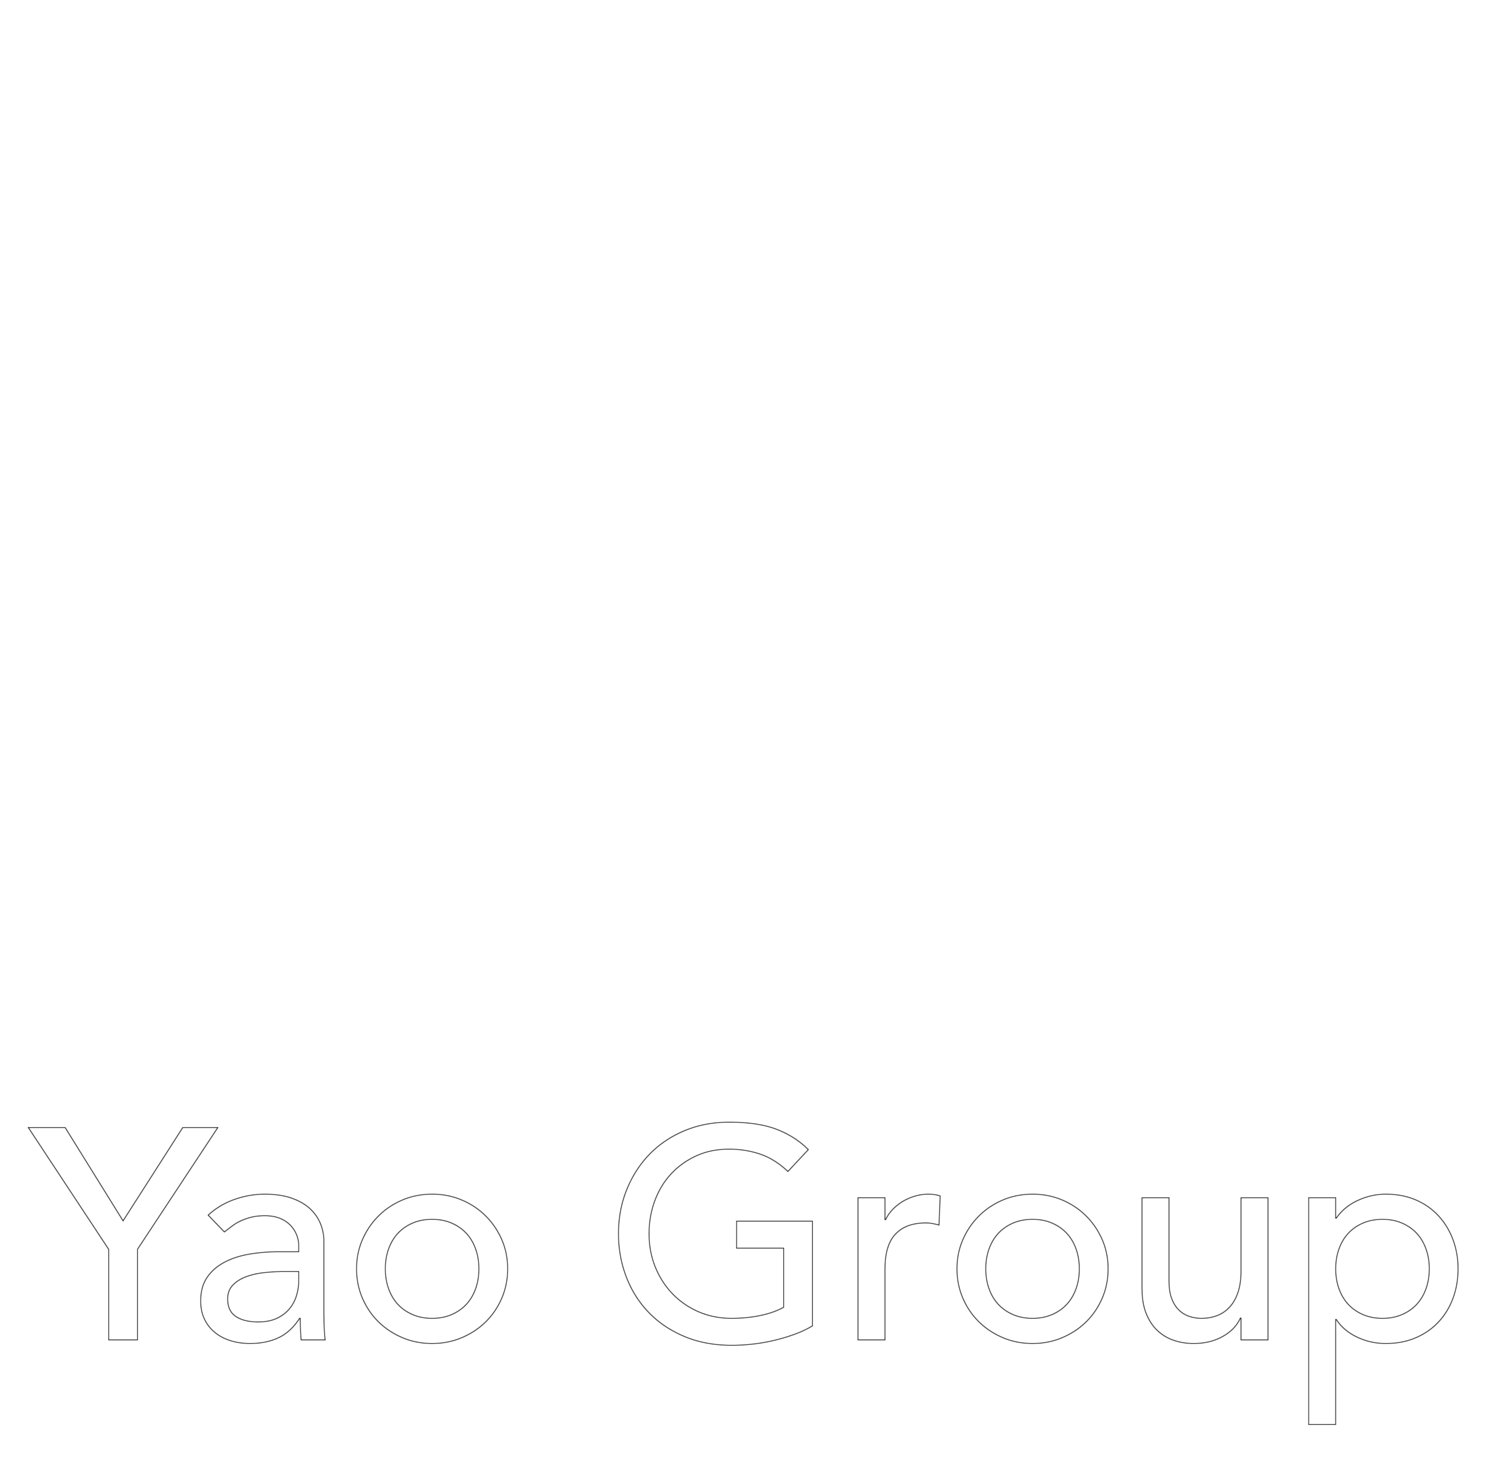 Yao Group